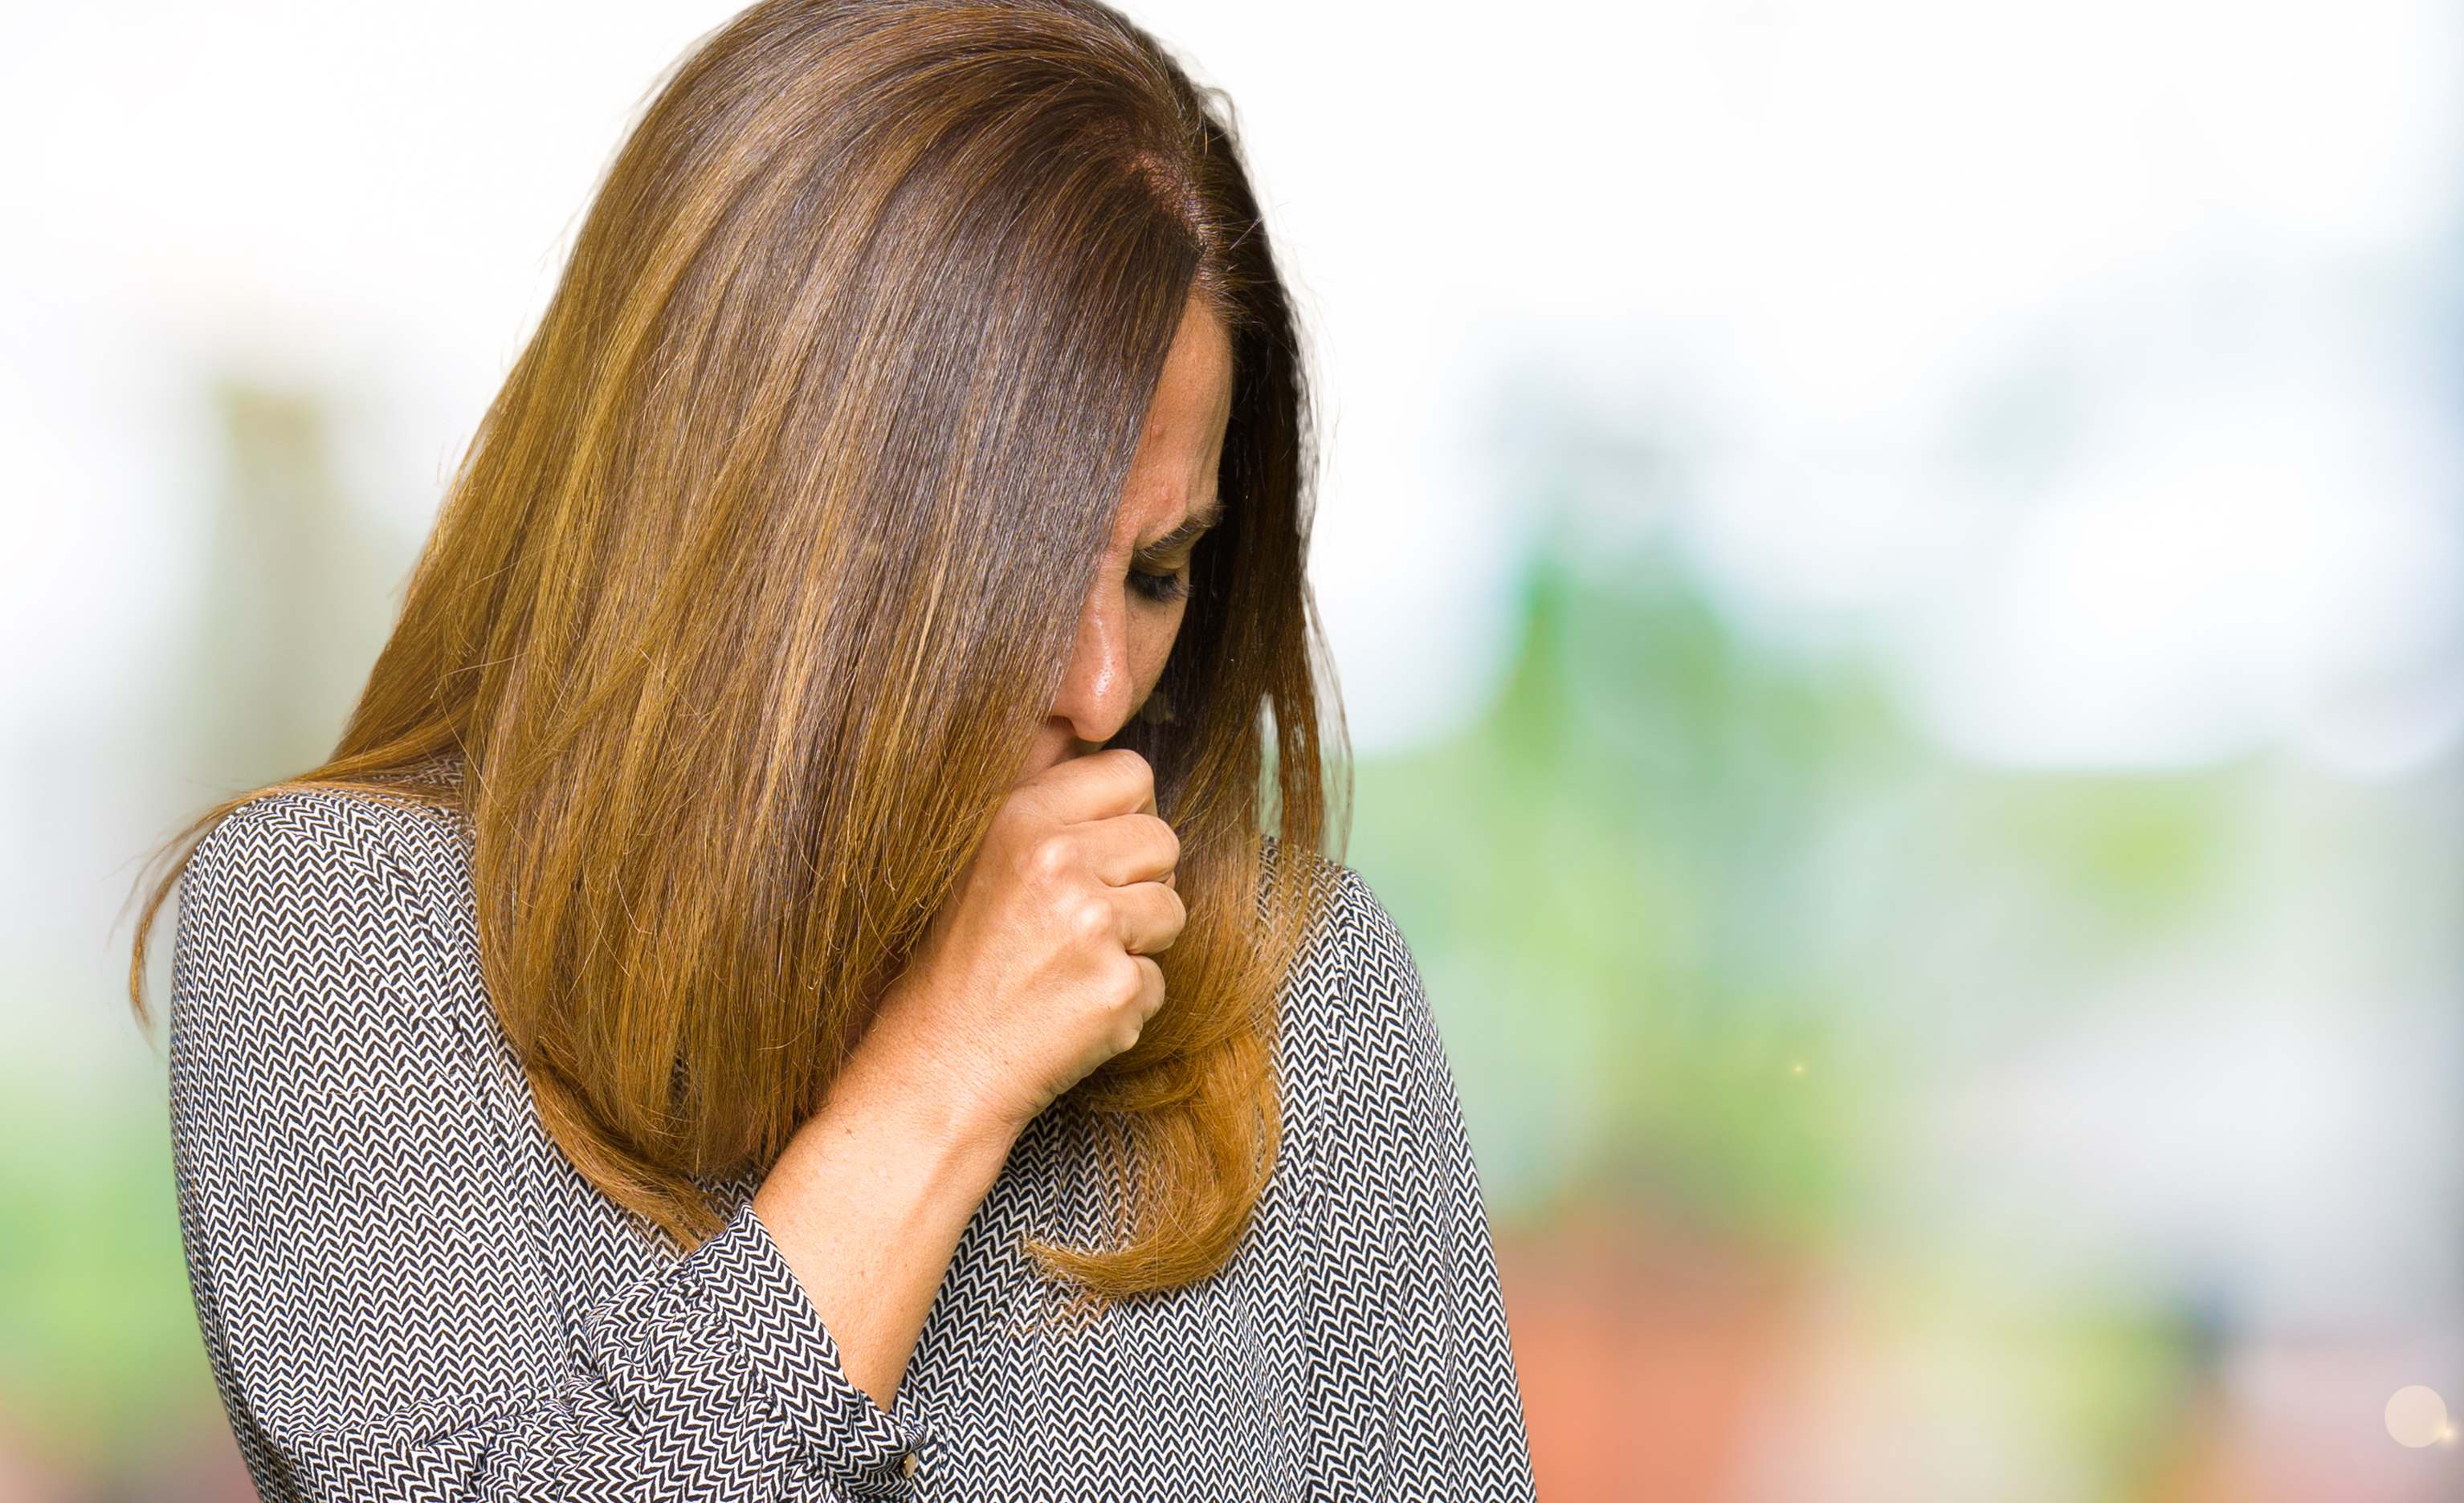 Why Coughing Every Several Minutes Can Be Caused by Anxiety